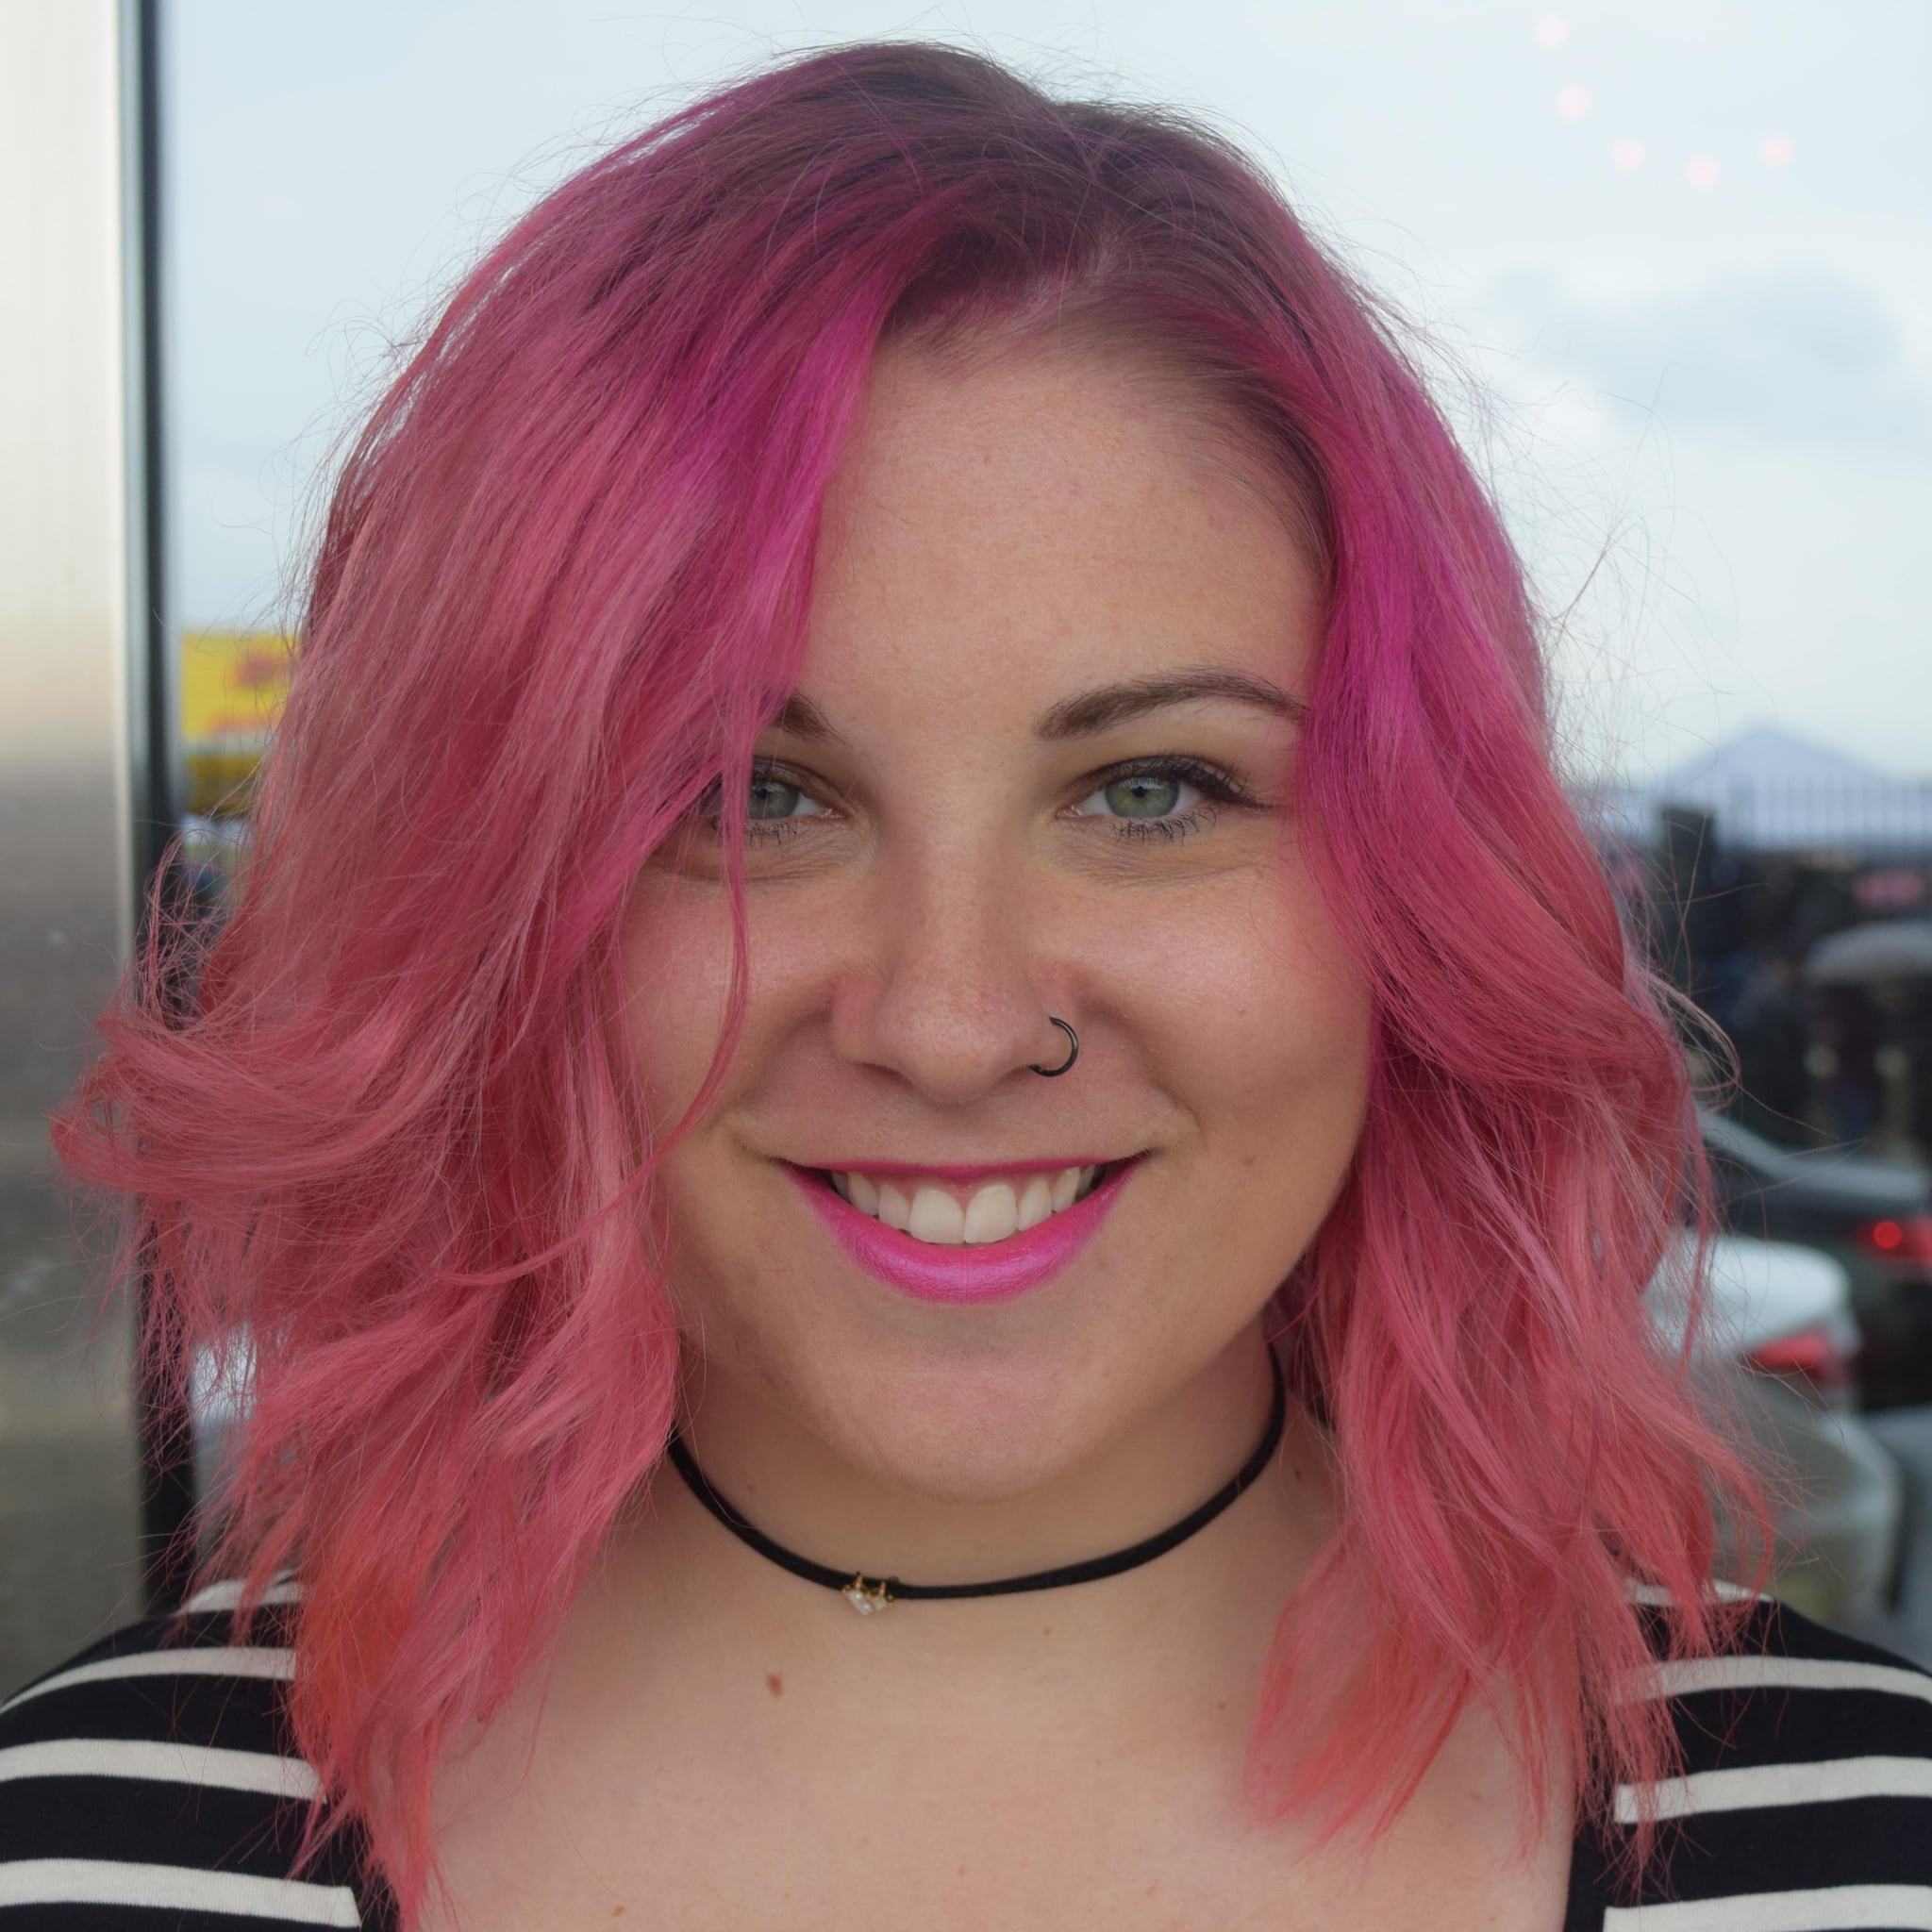 Lime Crime Rainbow Hair Dye Review Popsugar Beauty